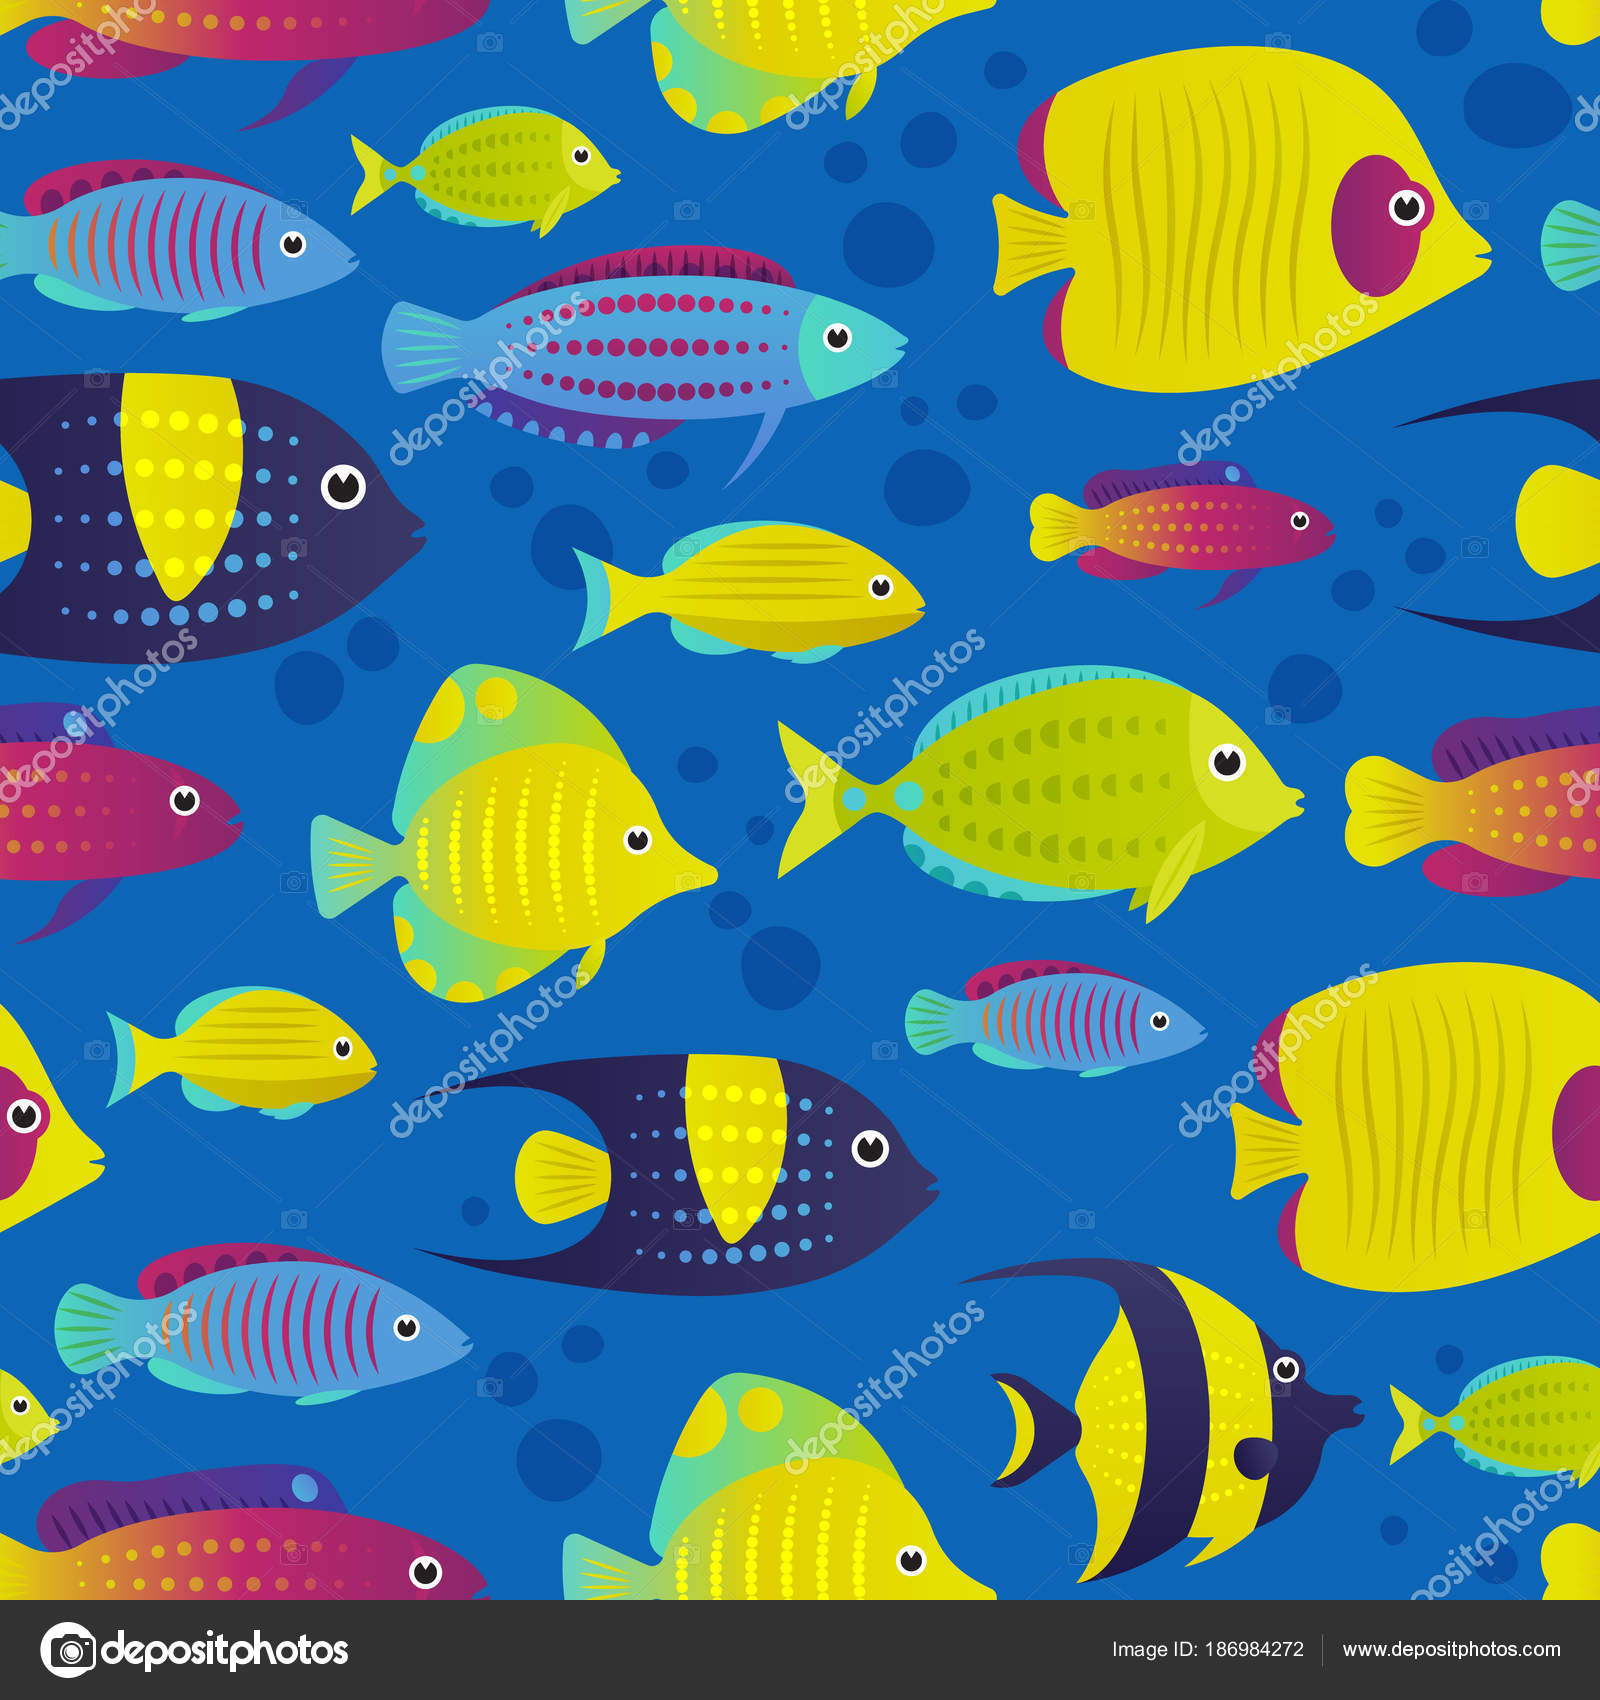 Vector Illustration Seamless Pattern Coral Reef Fish Cartoon